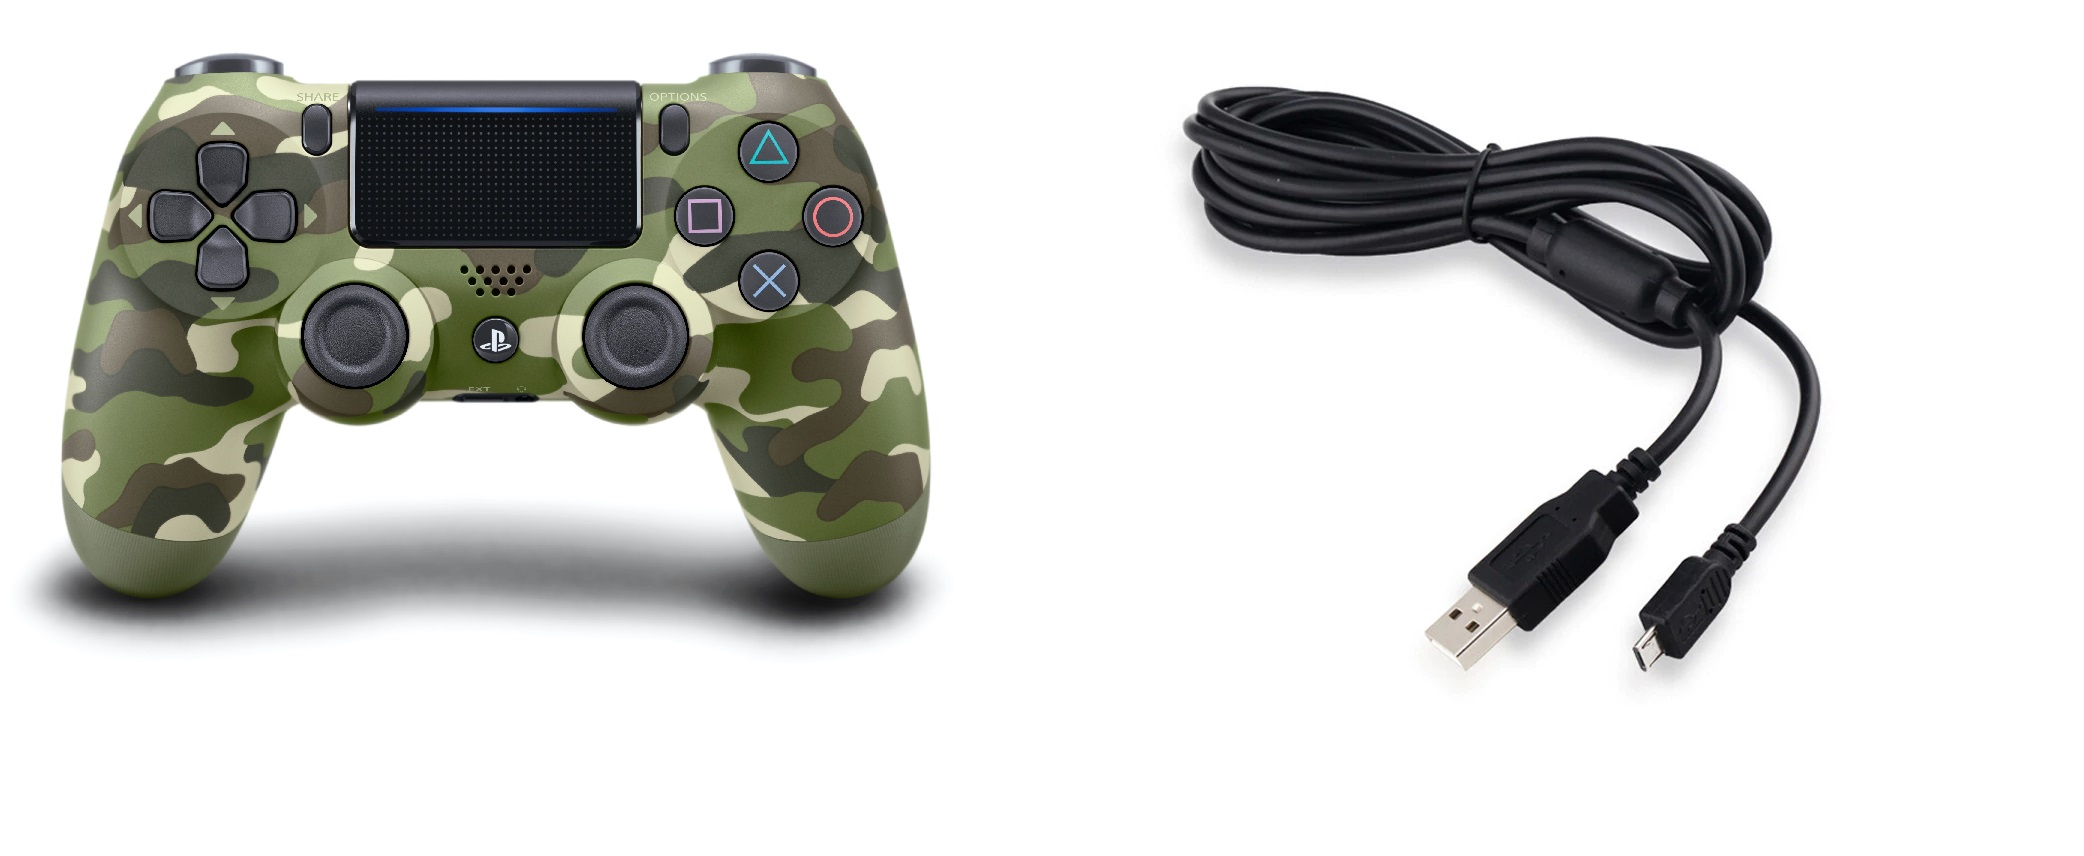 tay-cam-ps4-camogreen-day-cap-sac-xin